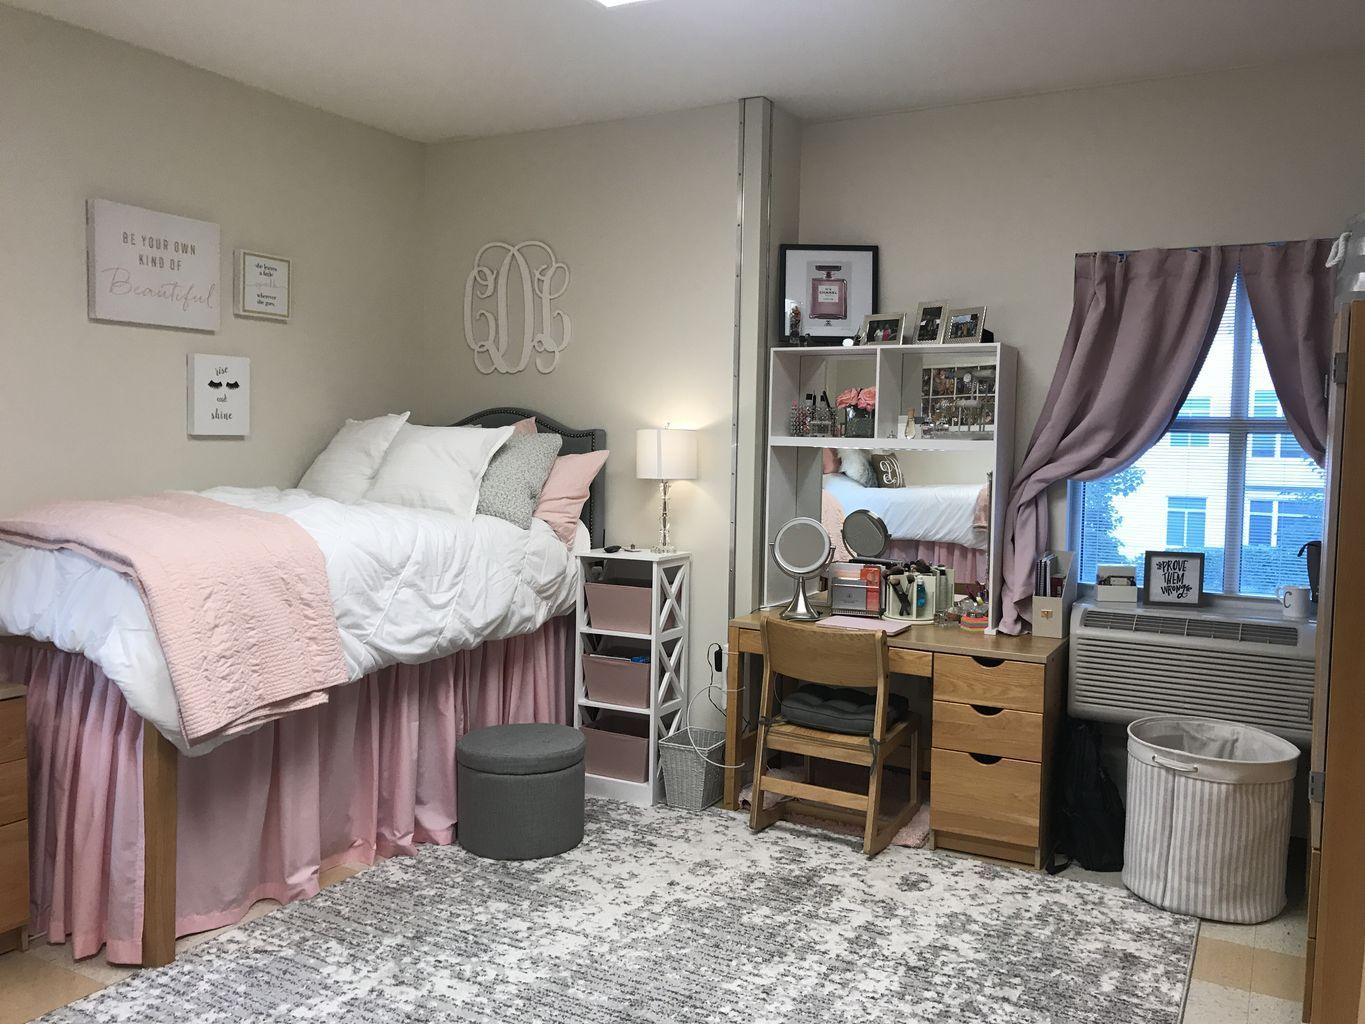 Cute Diy Dorm Room Decorating Ideas On A Budget 4 With Images